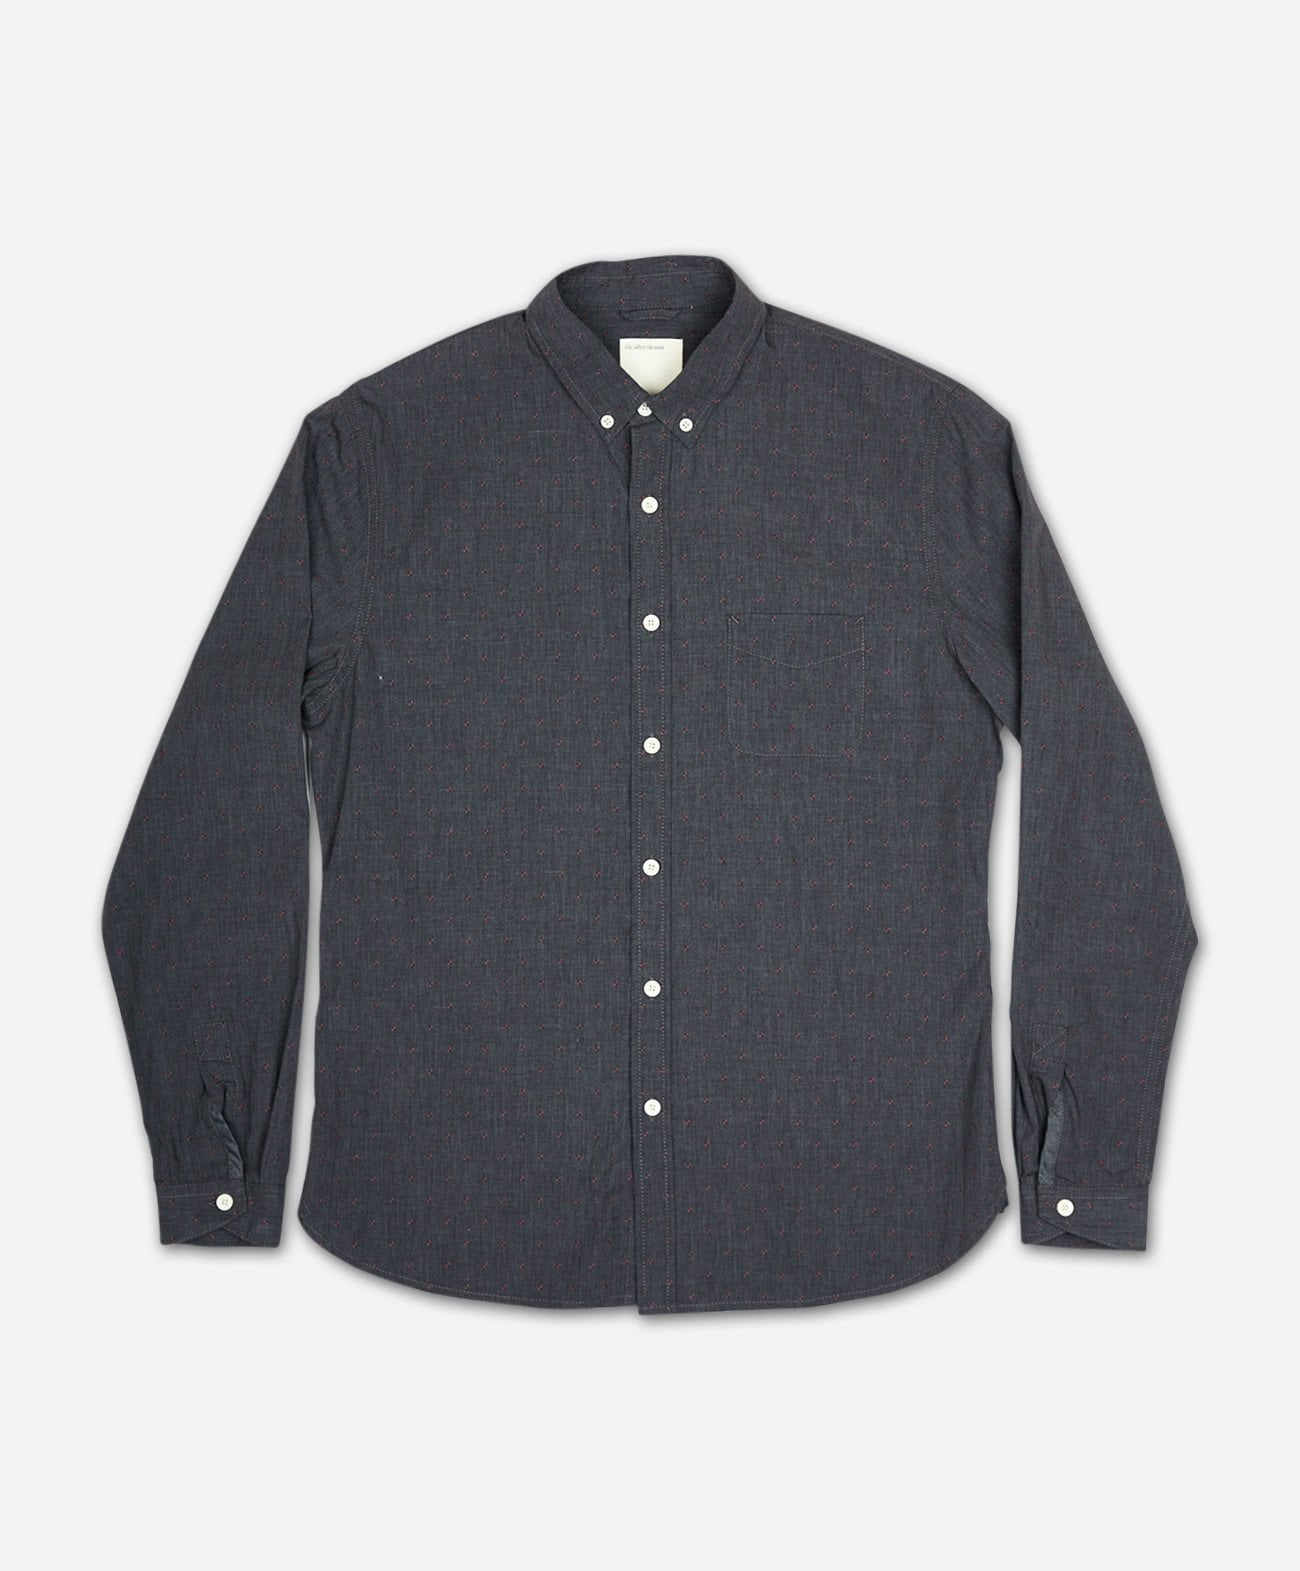 Deadwood Shirt - Heather Charcoal